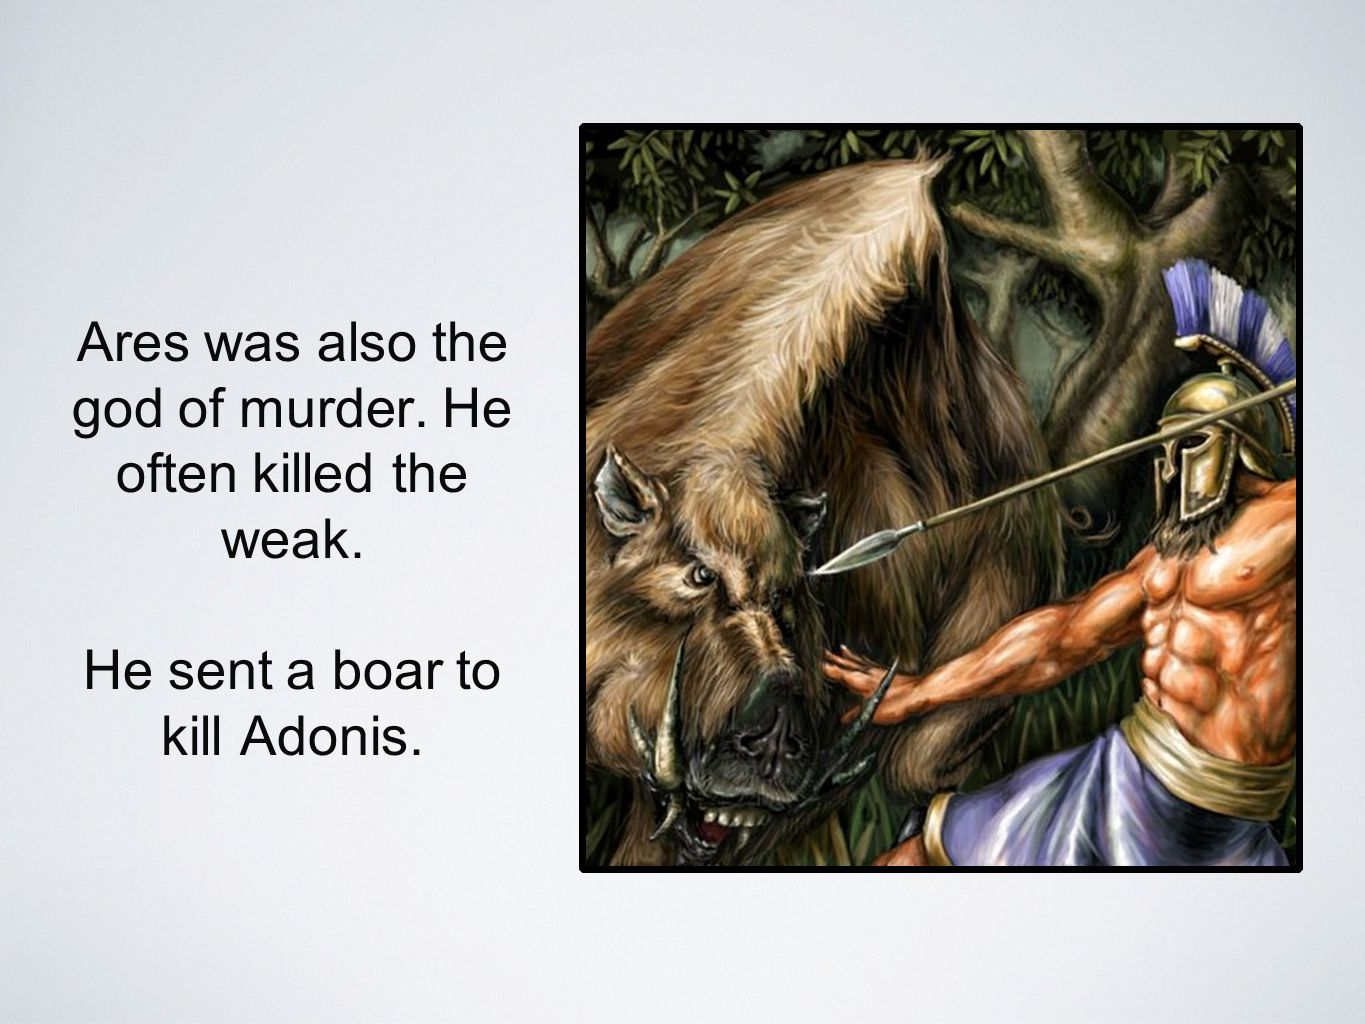 Ares was also the god of murder. He often killed the weak.